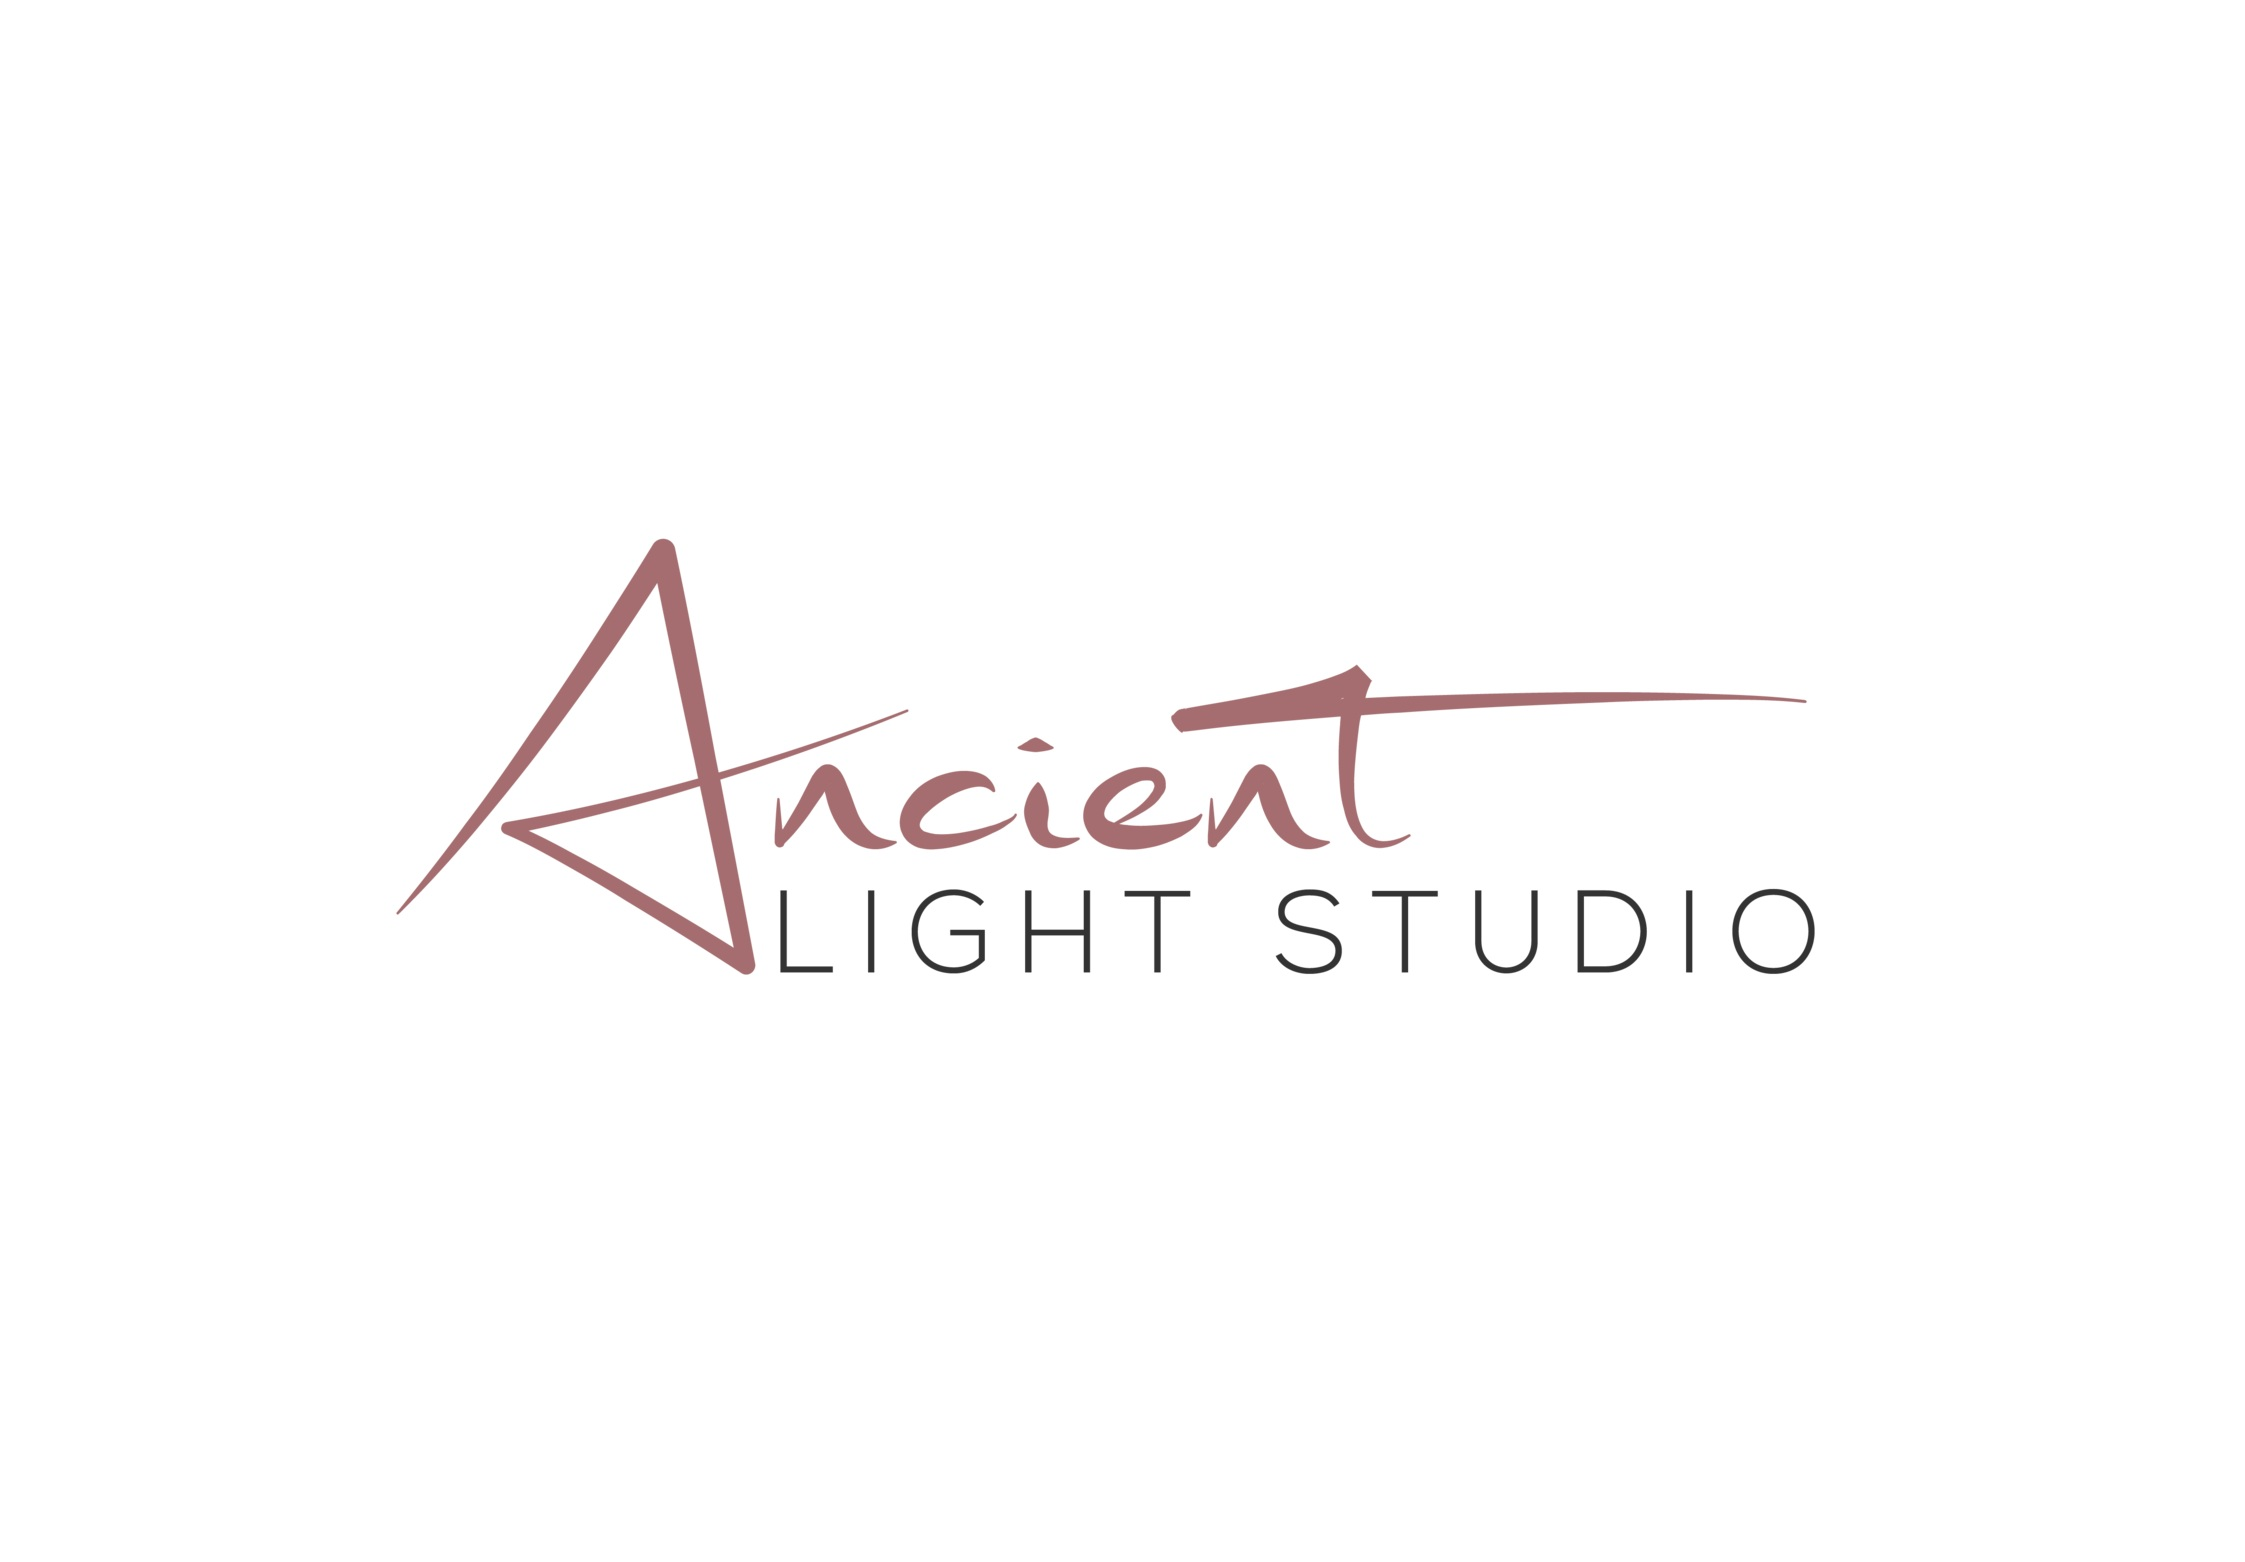 Ancient Light Studio - 521 Halsey Street, Brooklyn, NY 11233Ancient Light Studio is a community space for curated events, educational classes & workshops, and rental space for events.